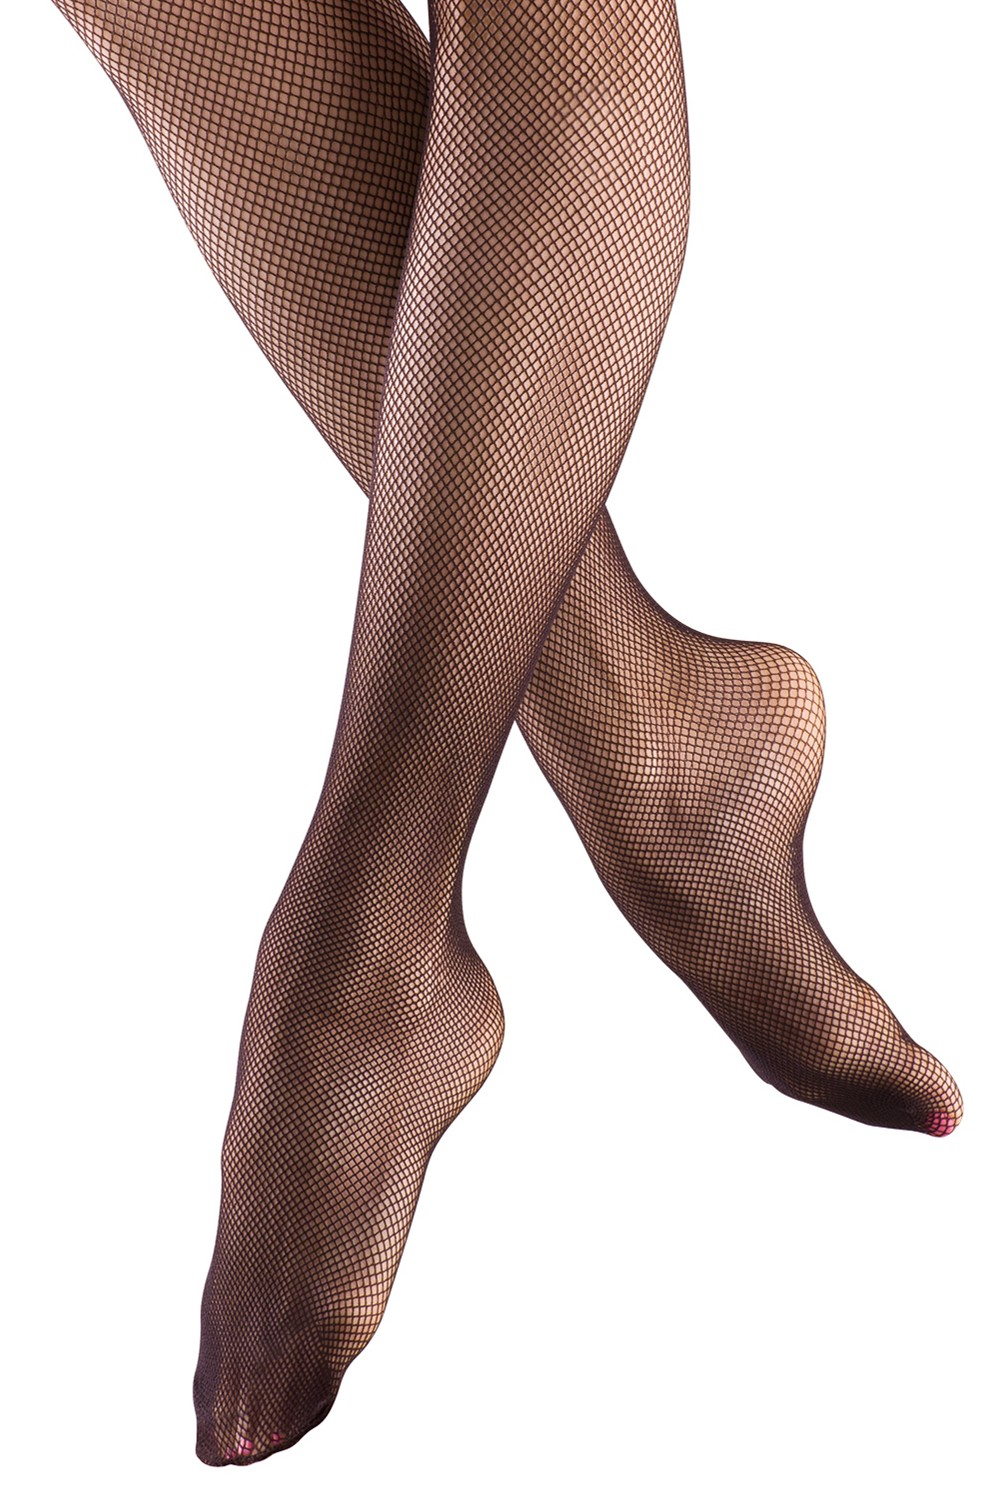 Girl's Fishnet Tight Children's Dance Tights